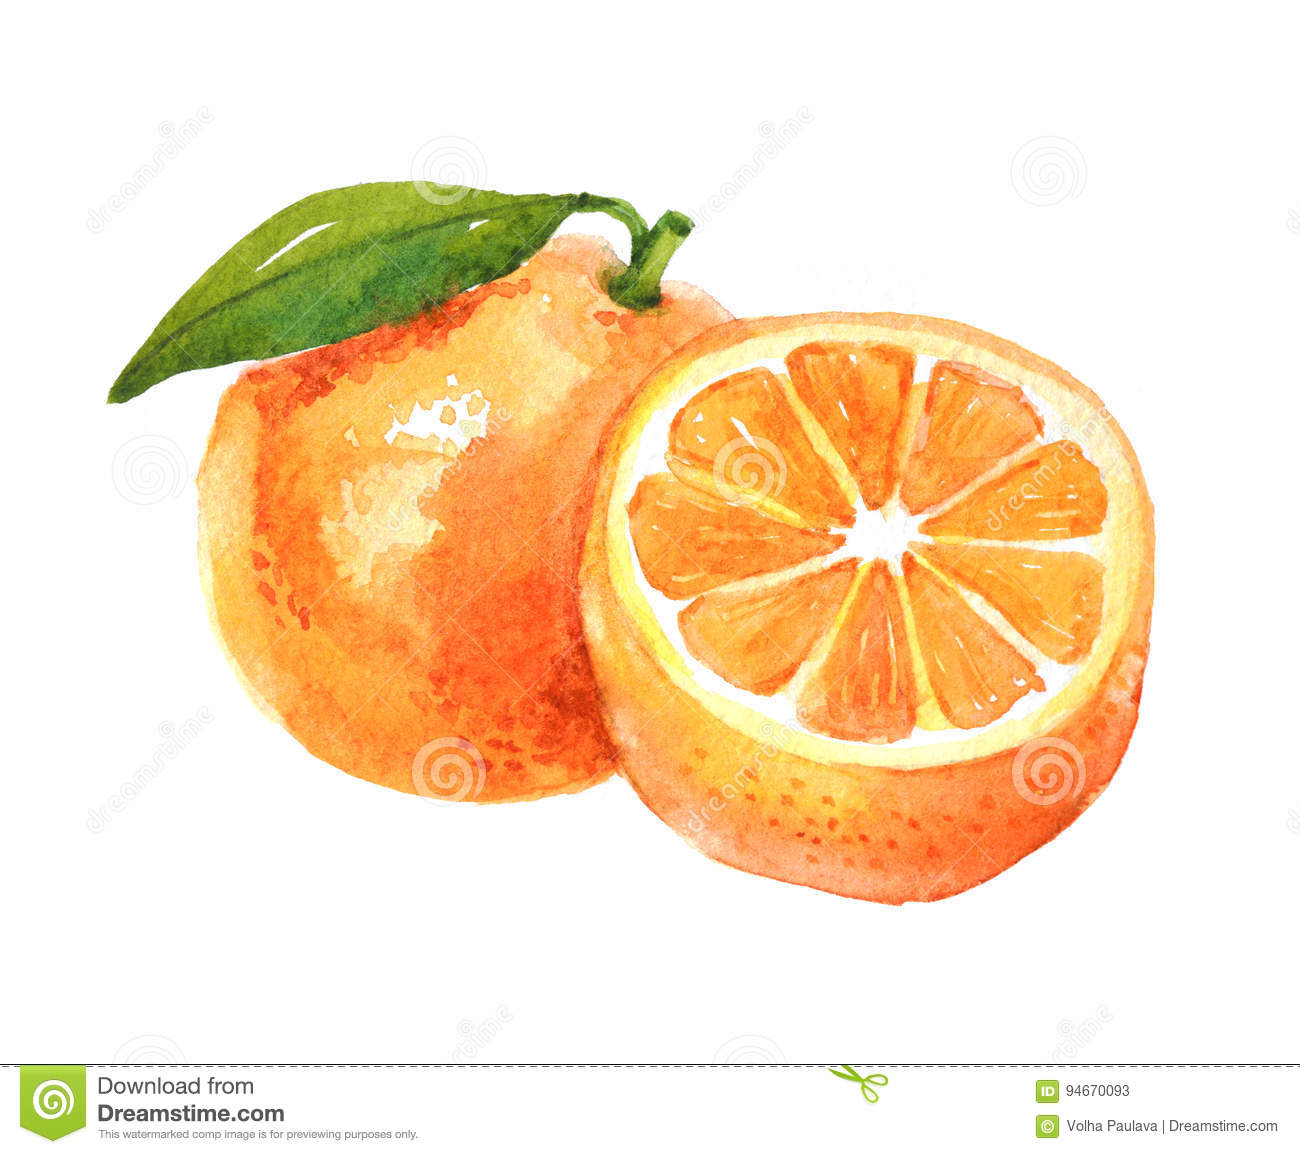 Pictures Of Orange Fruits